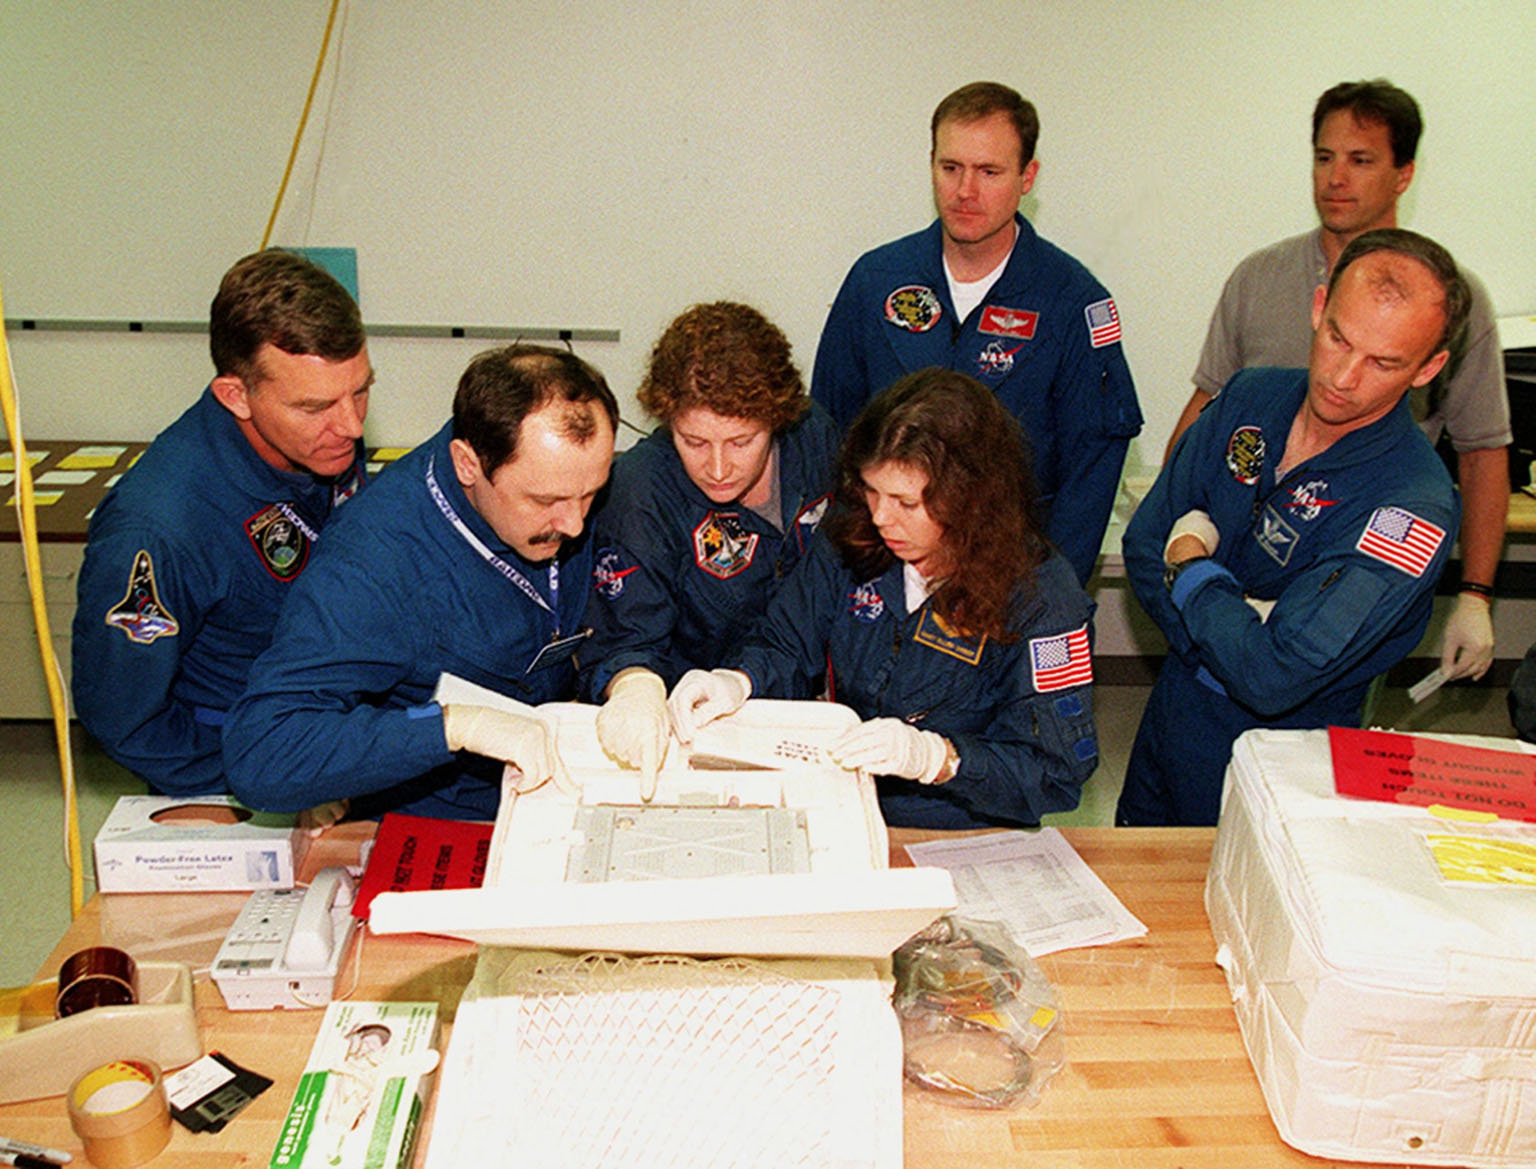 KENNEDY SPACE CENTER, FLA. -- At SPACEHAB, in Cape Canaveral, Fla., members of the STS-101 crew take part in Crew Equipment Interface Test (CEIT) activities, learning about some of the equipment they will be working with on their mission to the International Space Station. Looking over one of the elements are Mission Specialists James Voss, Yuri Usachev of Russia, Susan Helms and Mary Ellen Weber. Behind them is Commander James Halsell; at right is Mission Specialist Jeffrey Williams. The crew will be responsible for preparing the Space Station for the arrival of the Zvezda Service Module, expected to be launched by Russia in July 2000. Also, the crew will conduct one space walk to perform maintenance on the Space Station and deliver logistics and supplies. This will be the third assembly flight for the Space Station. STS-101 is scheduled to launch no earlier than April 13 from Launch Pad 39A